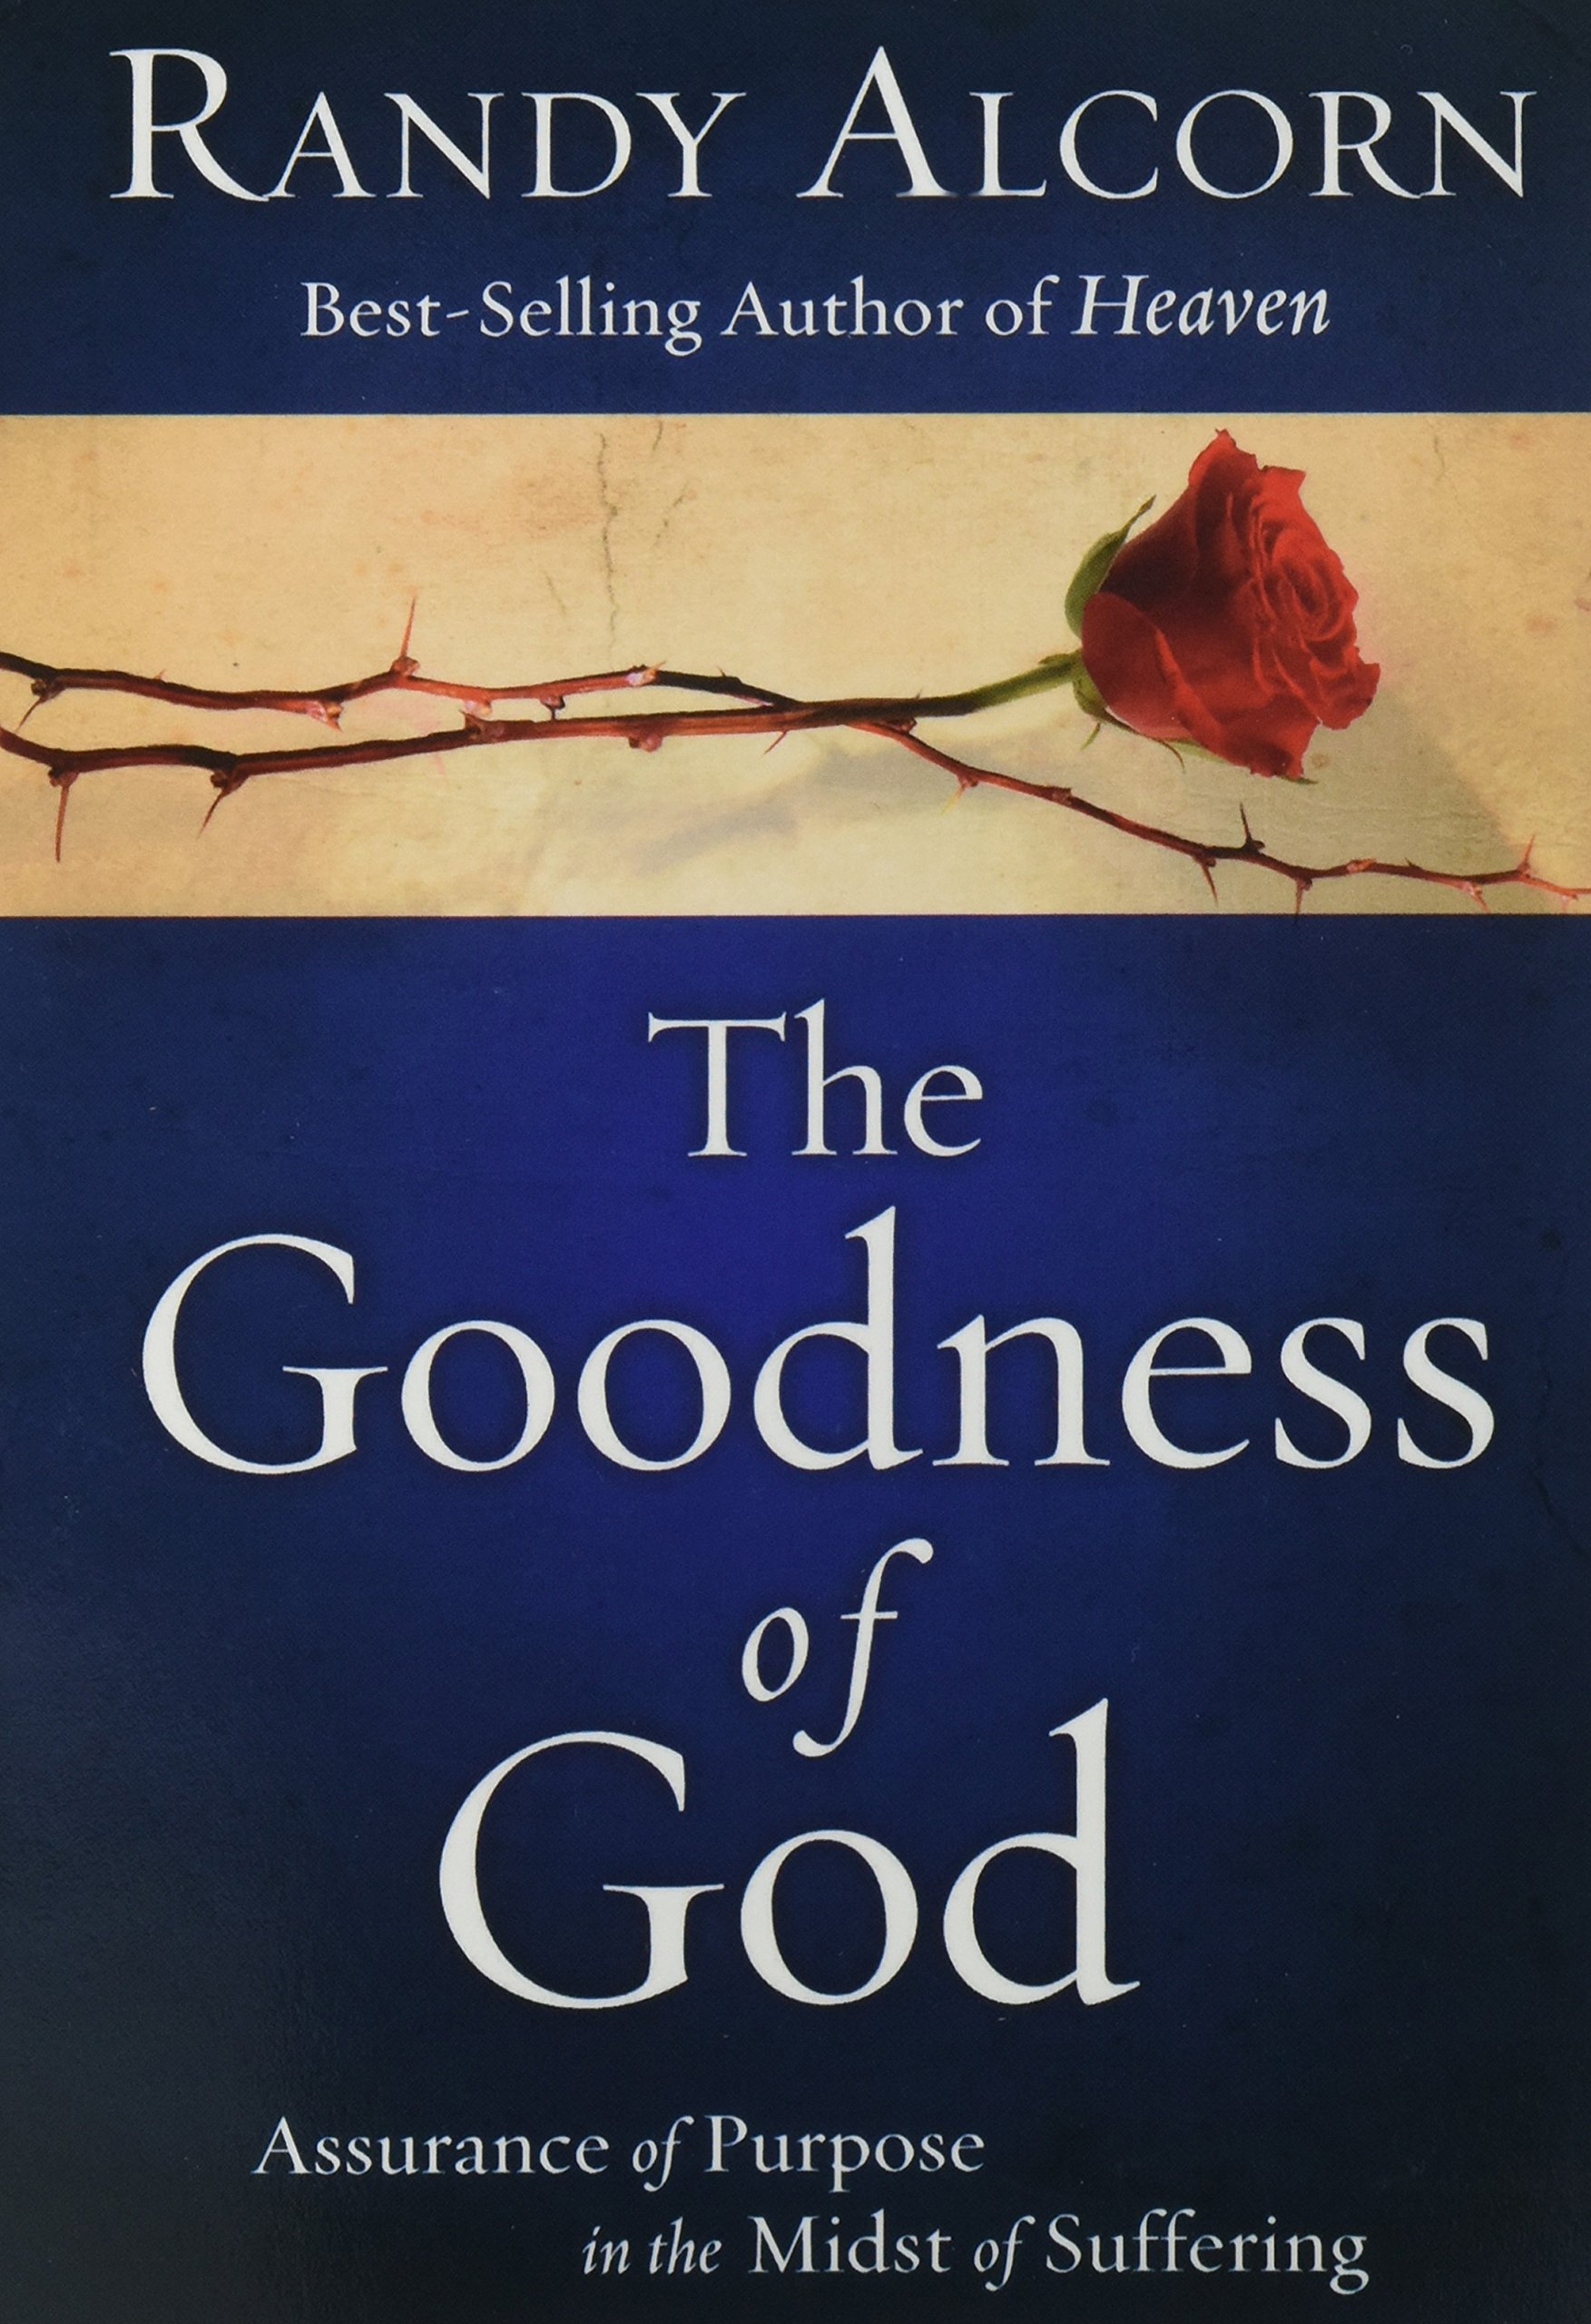 The Goodness of God: Assurance of Purpose in the Midst of Suffering: Randy  Alcorn: 9780735290938: Amazon.com: Books